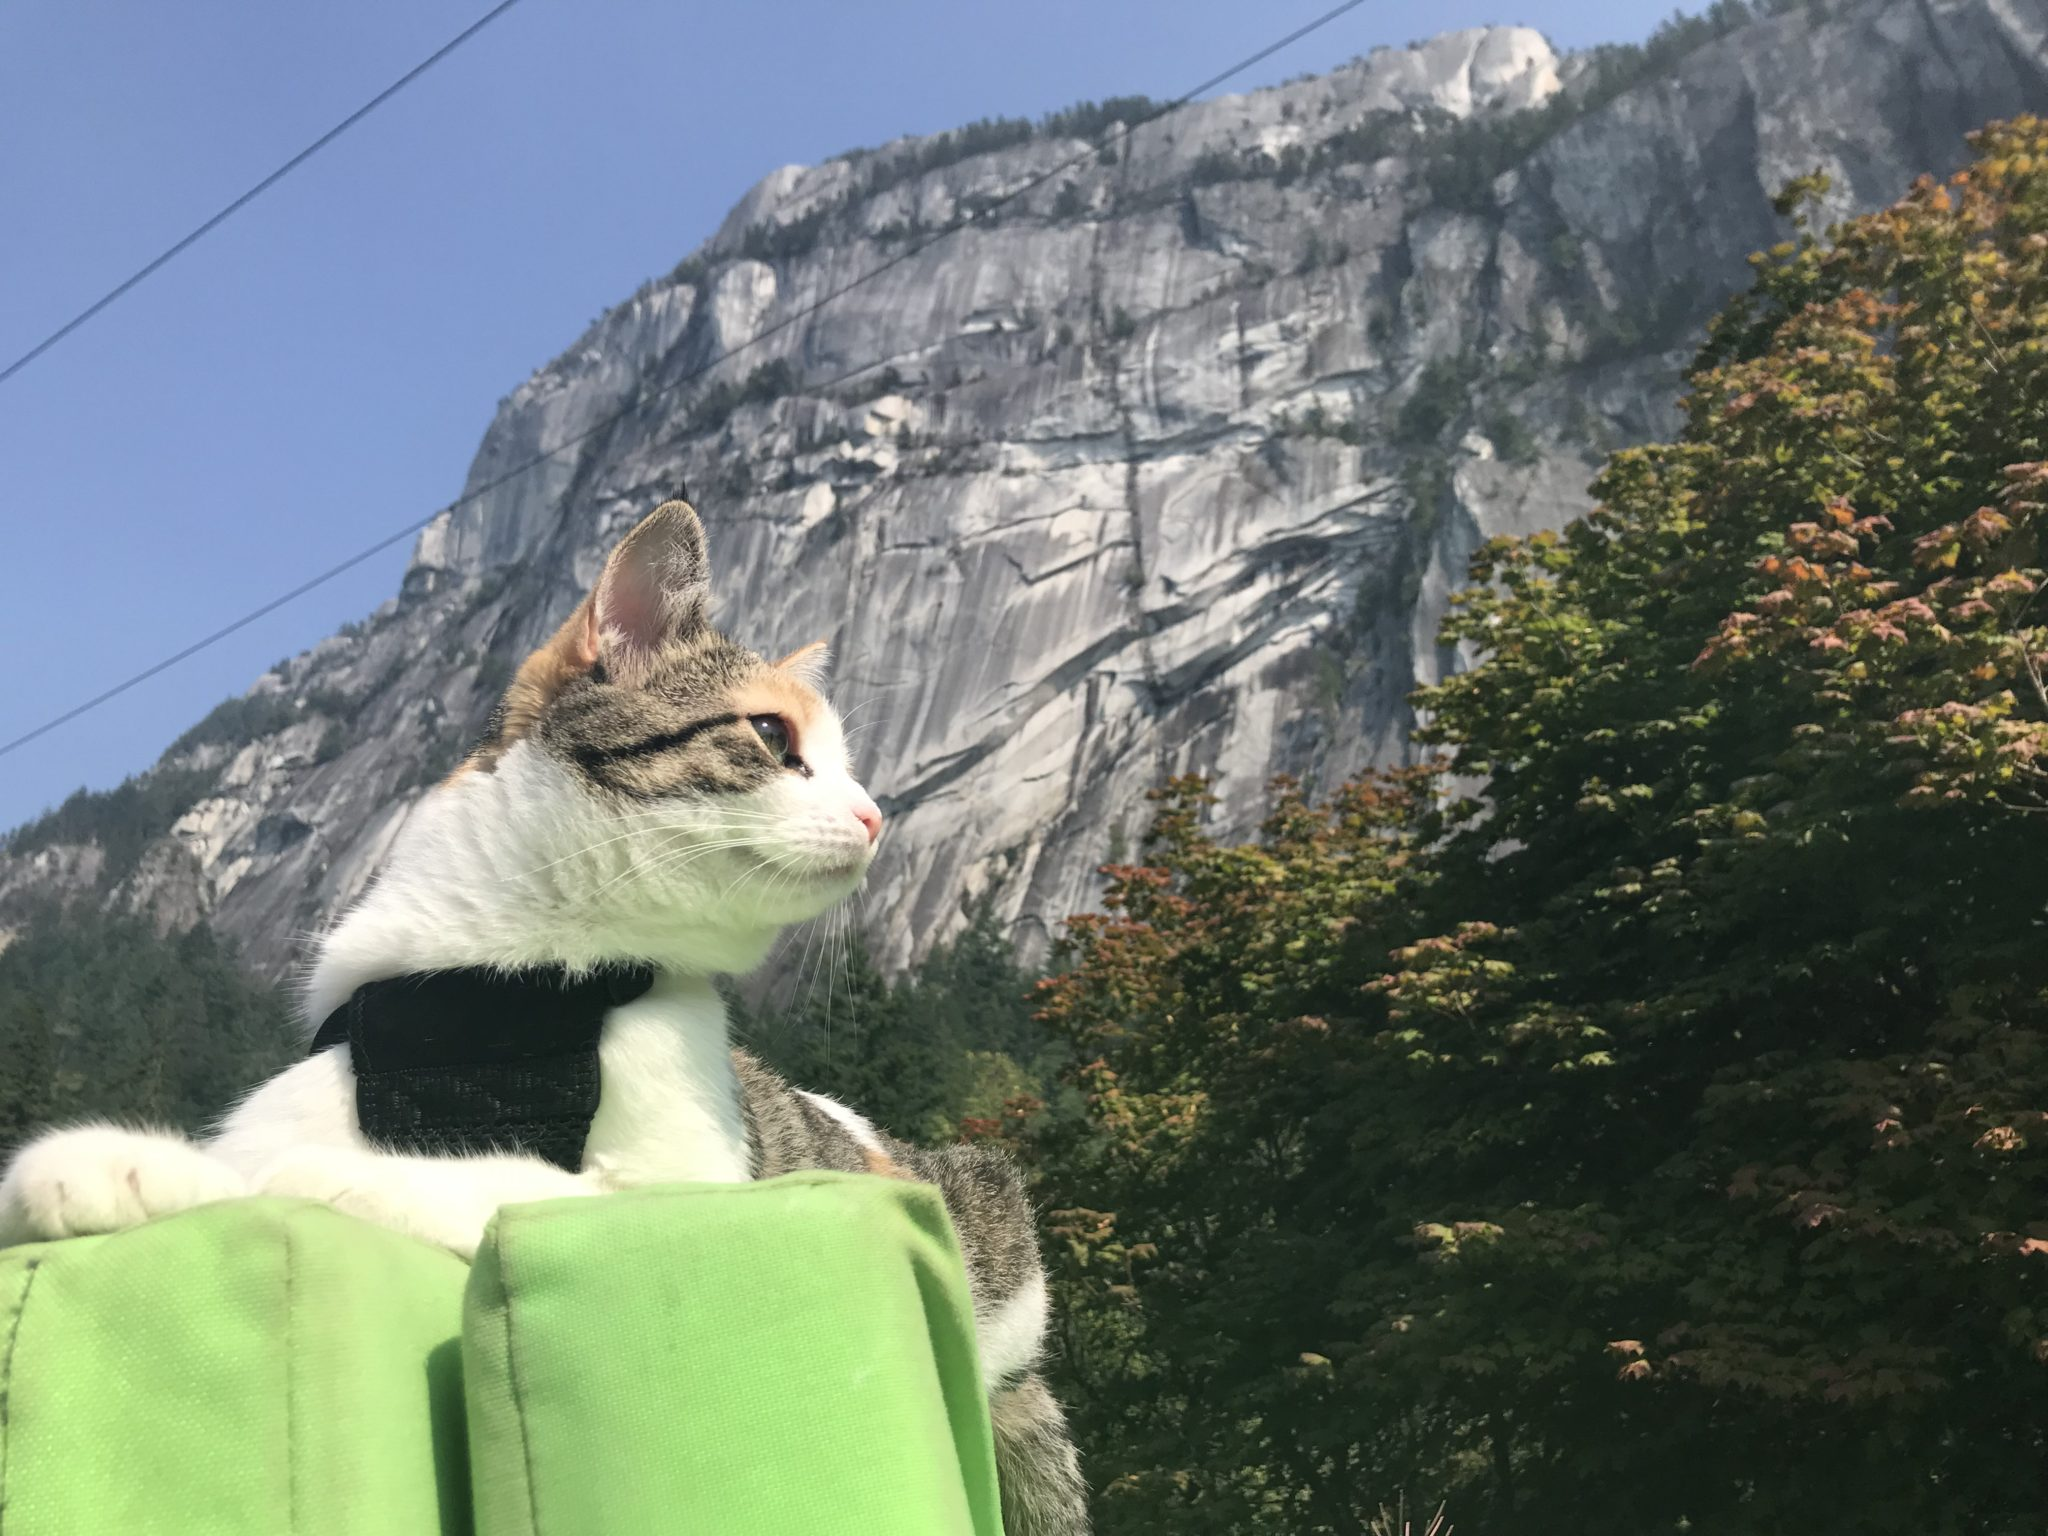 Cali is right at home in the meowntains.